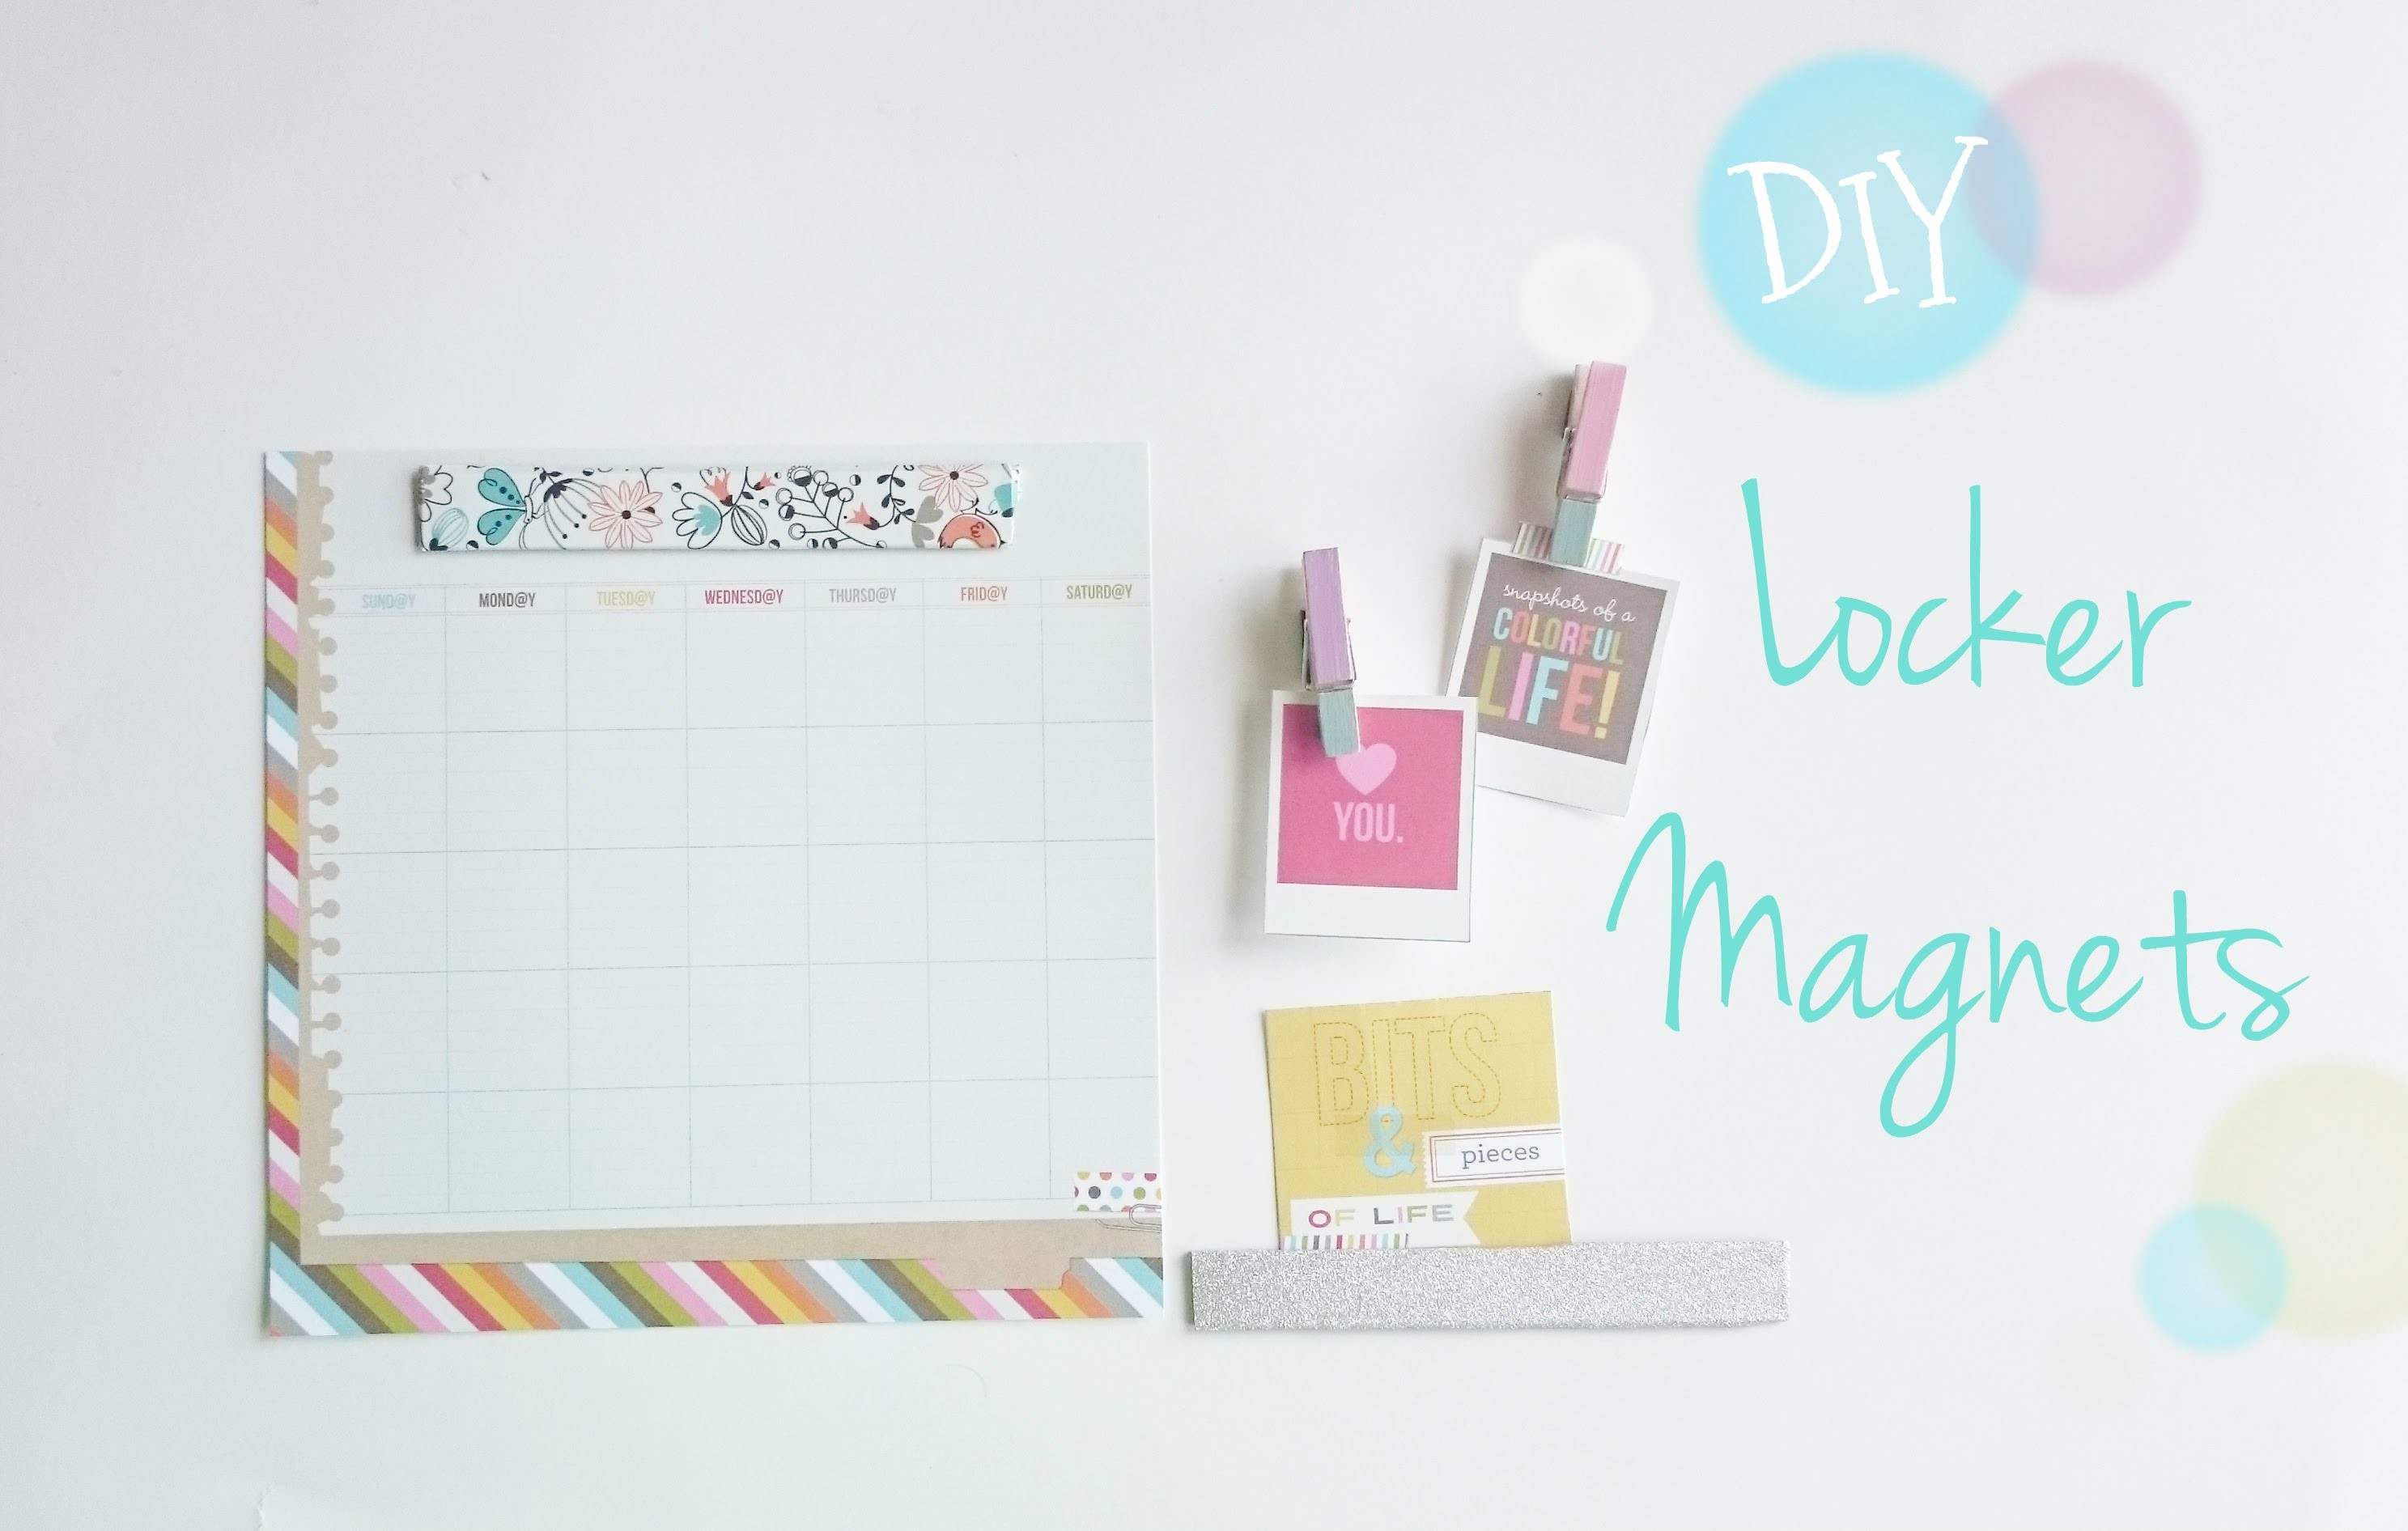 Locker Magnets DIY Back to School